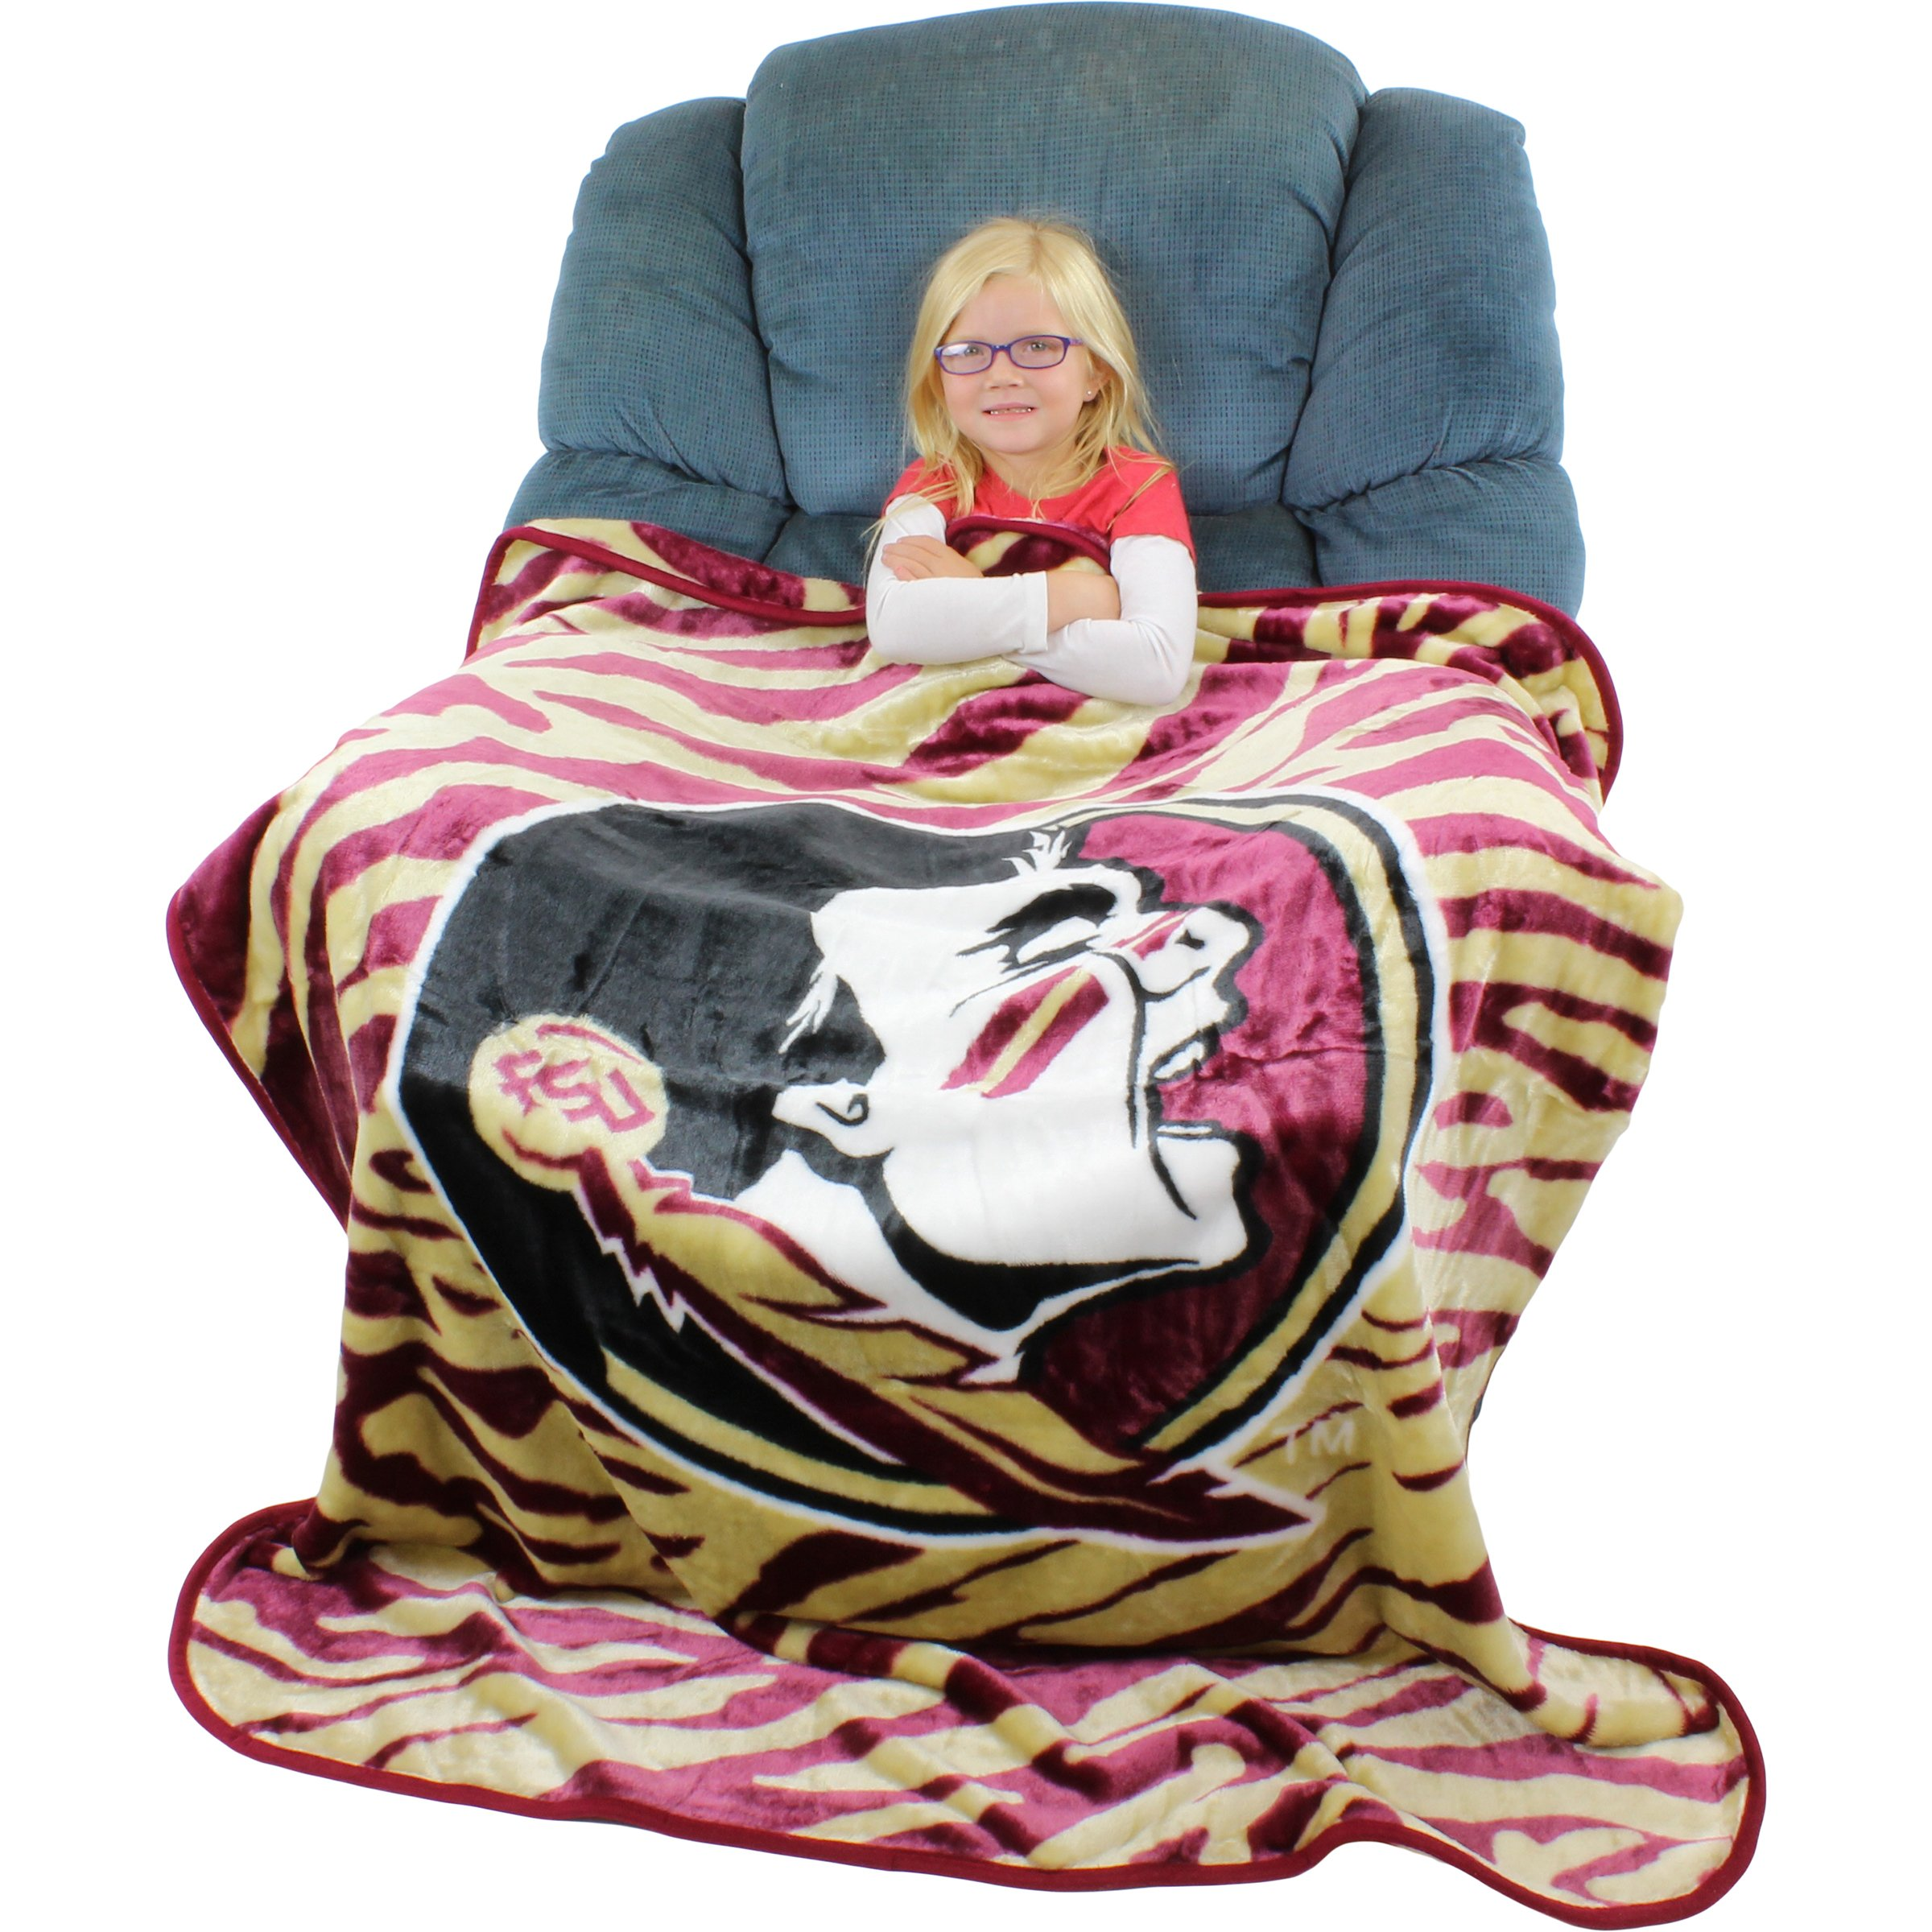 College Covers Florida State Seminoles Super Soft Raschel Throw Blanket, 50'' x 60''